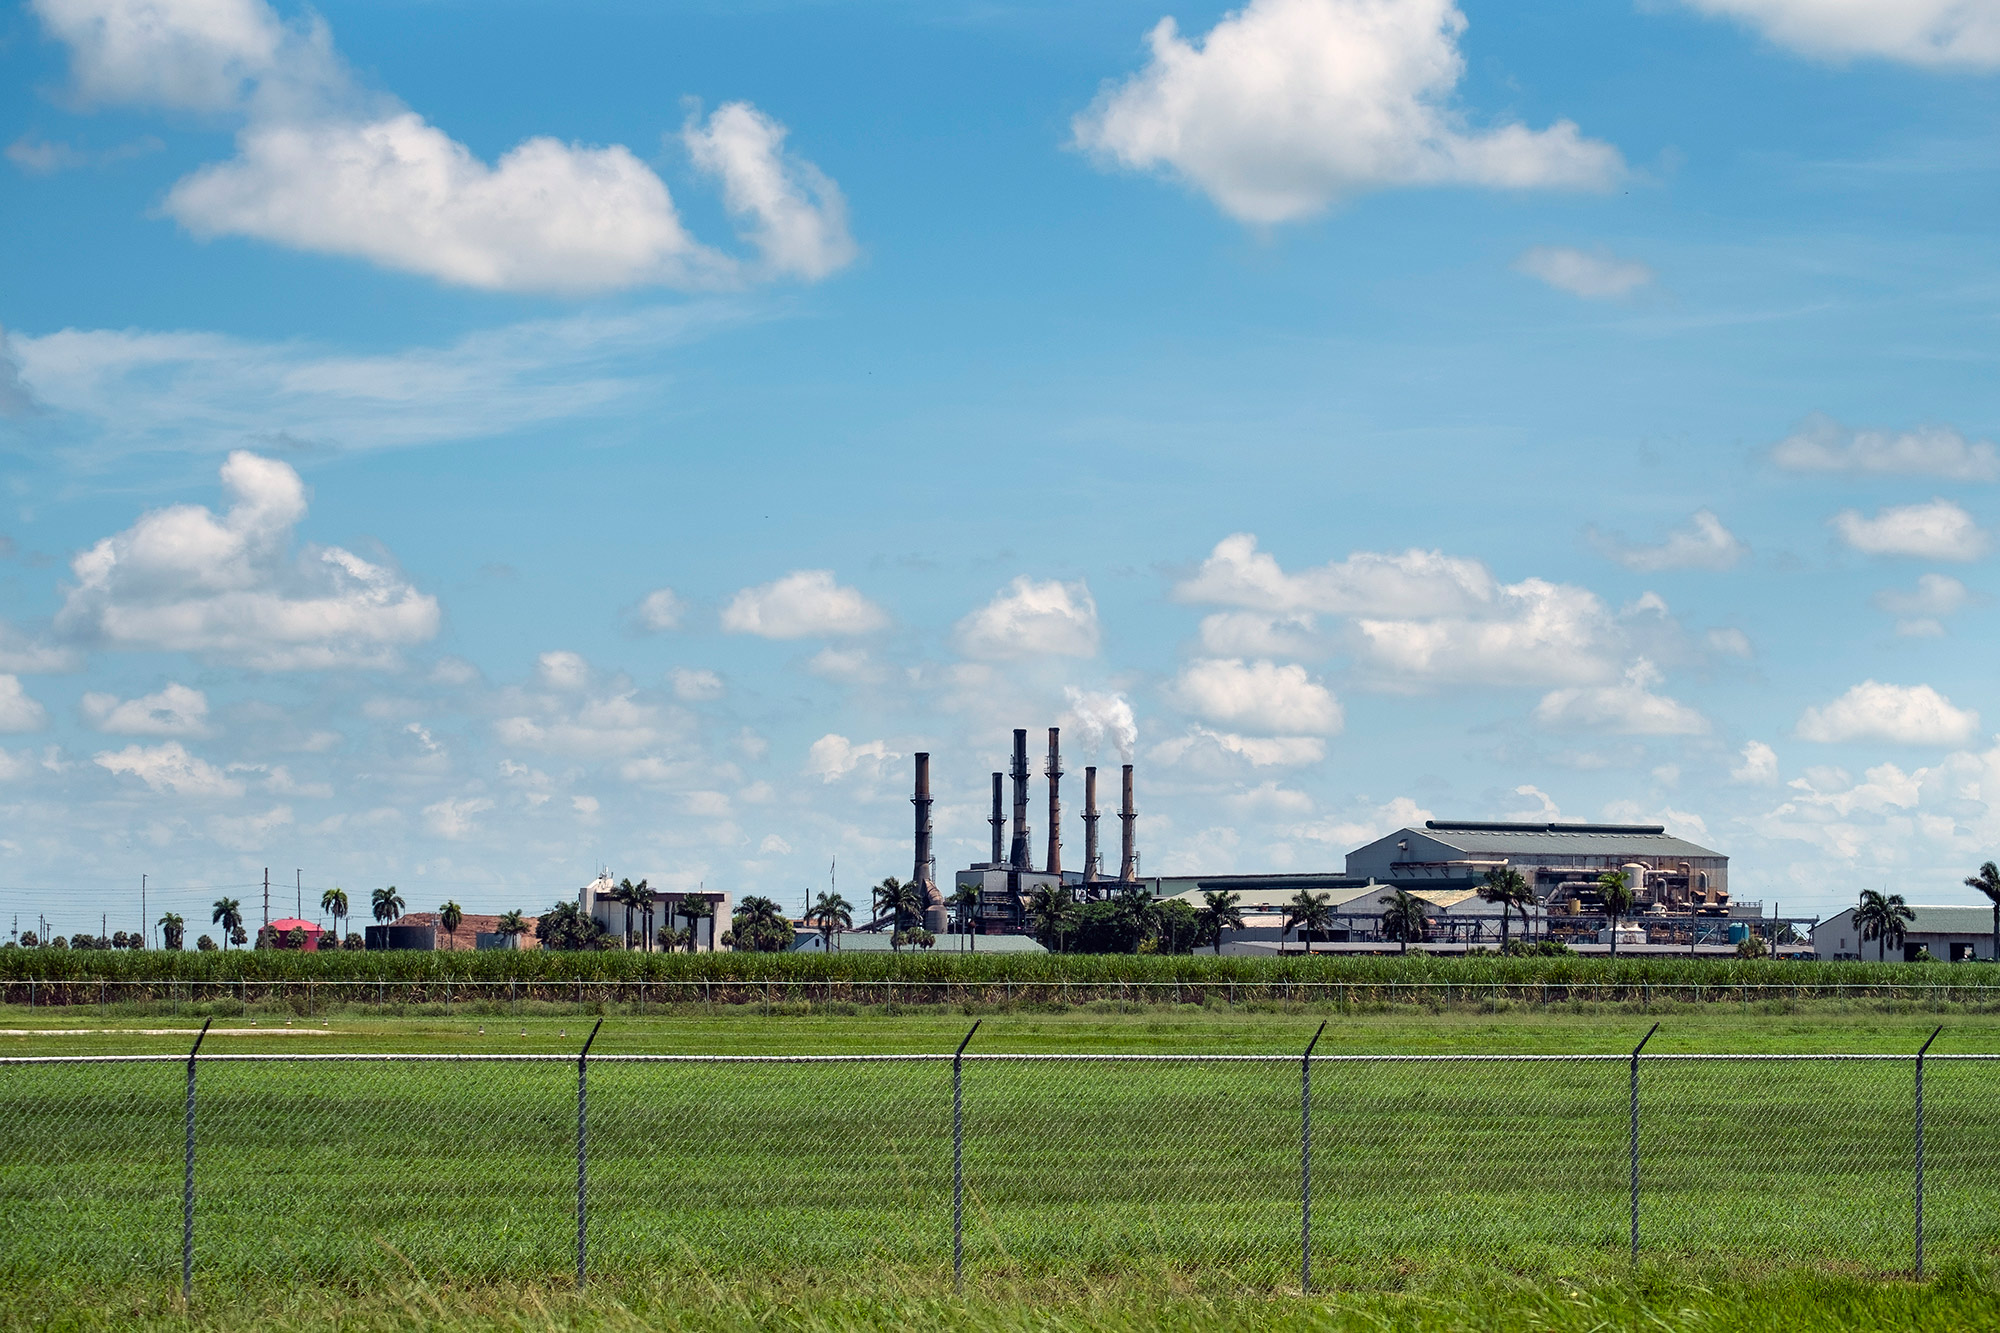 Smoke billows out of two smokestacks at the Sugar Cane Growers Cooperative of Florida sugar-processing facility in Belle Glade.